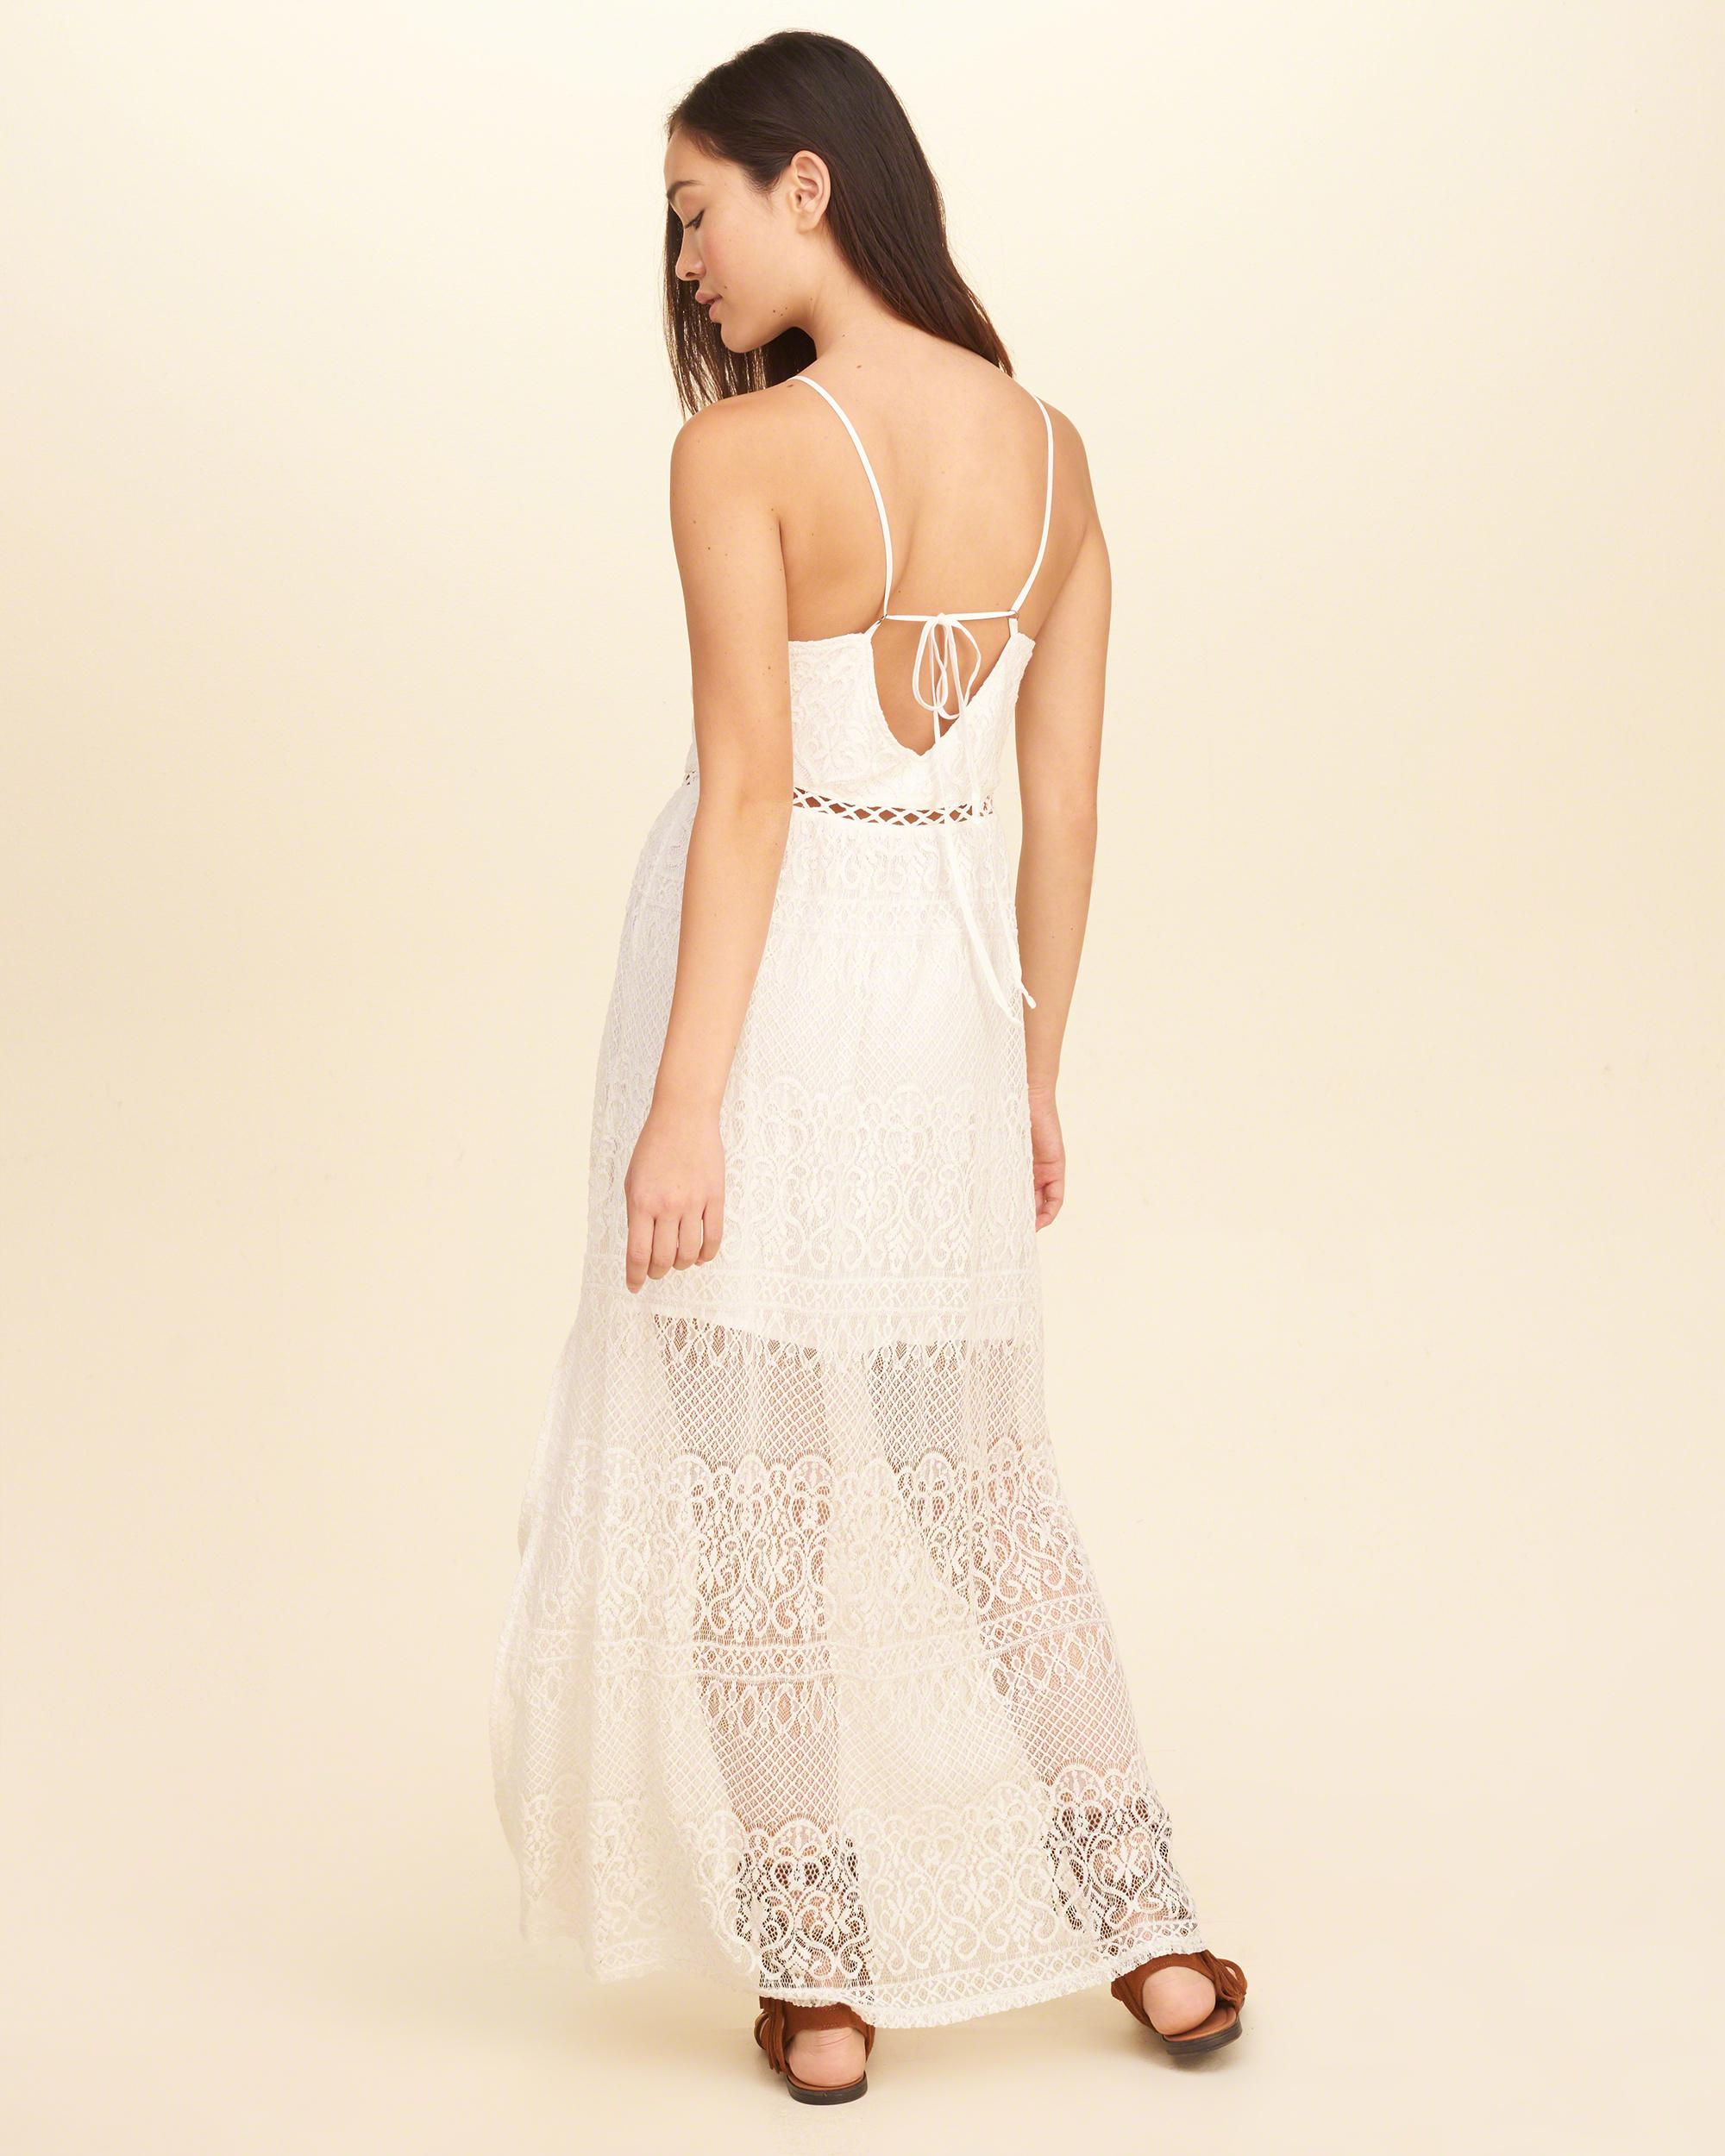 Hollister White Lace Dress : Fashion Show Collection